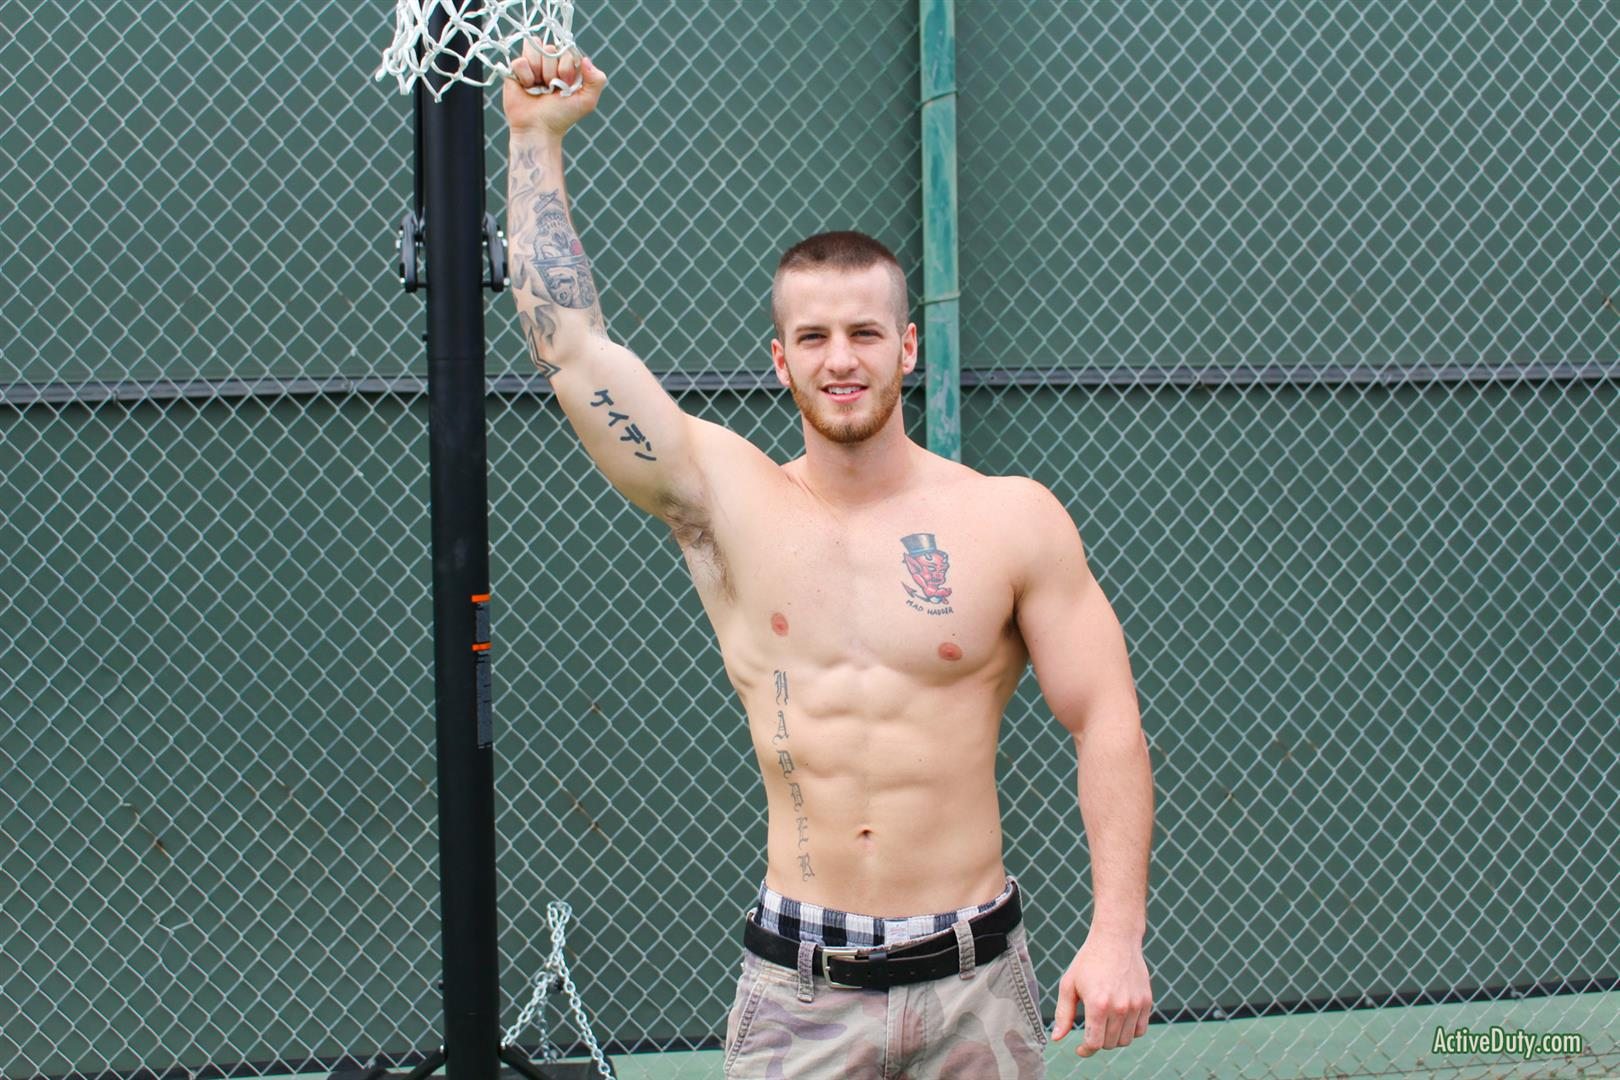 Active Duty Quentin Muscular Naked Army Soldier Masturbating Big Cock Amateur Gay Porn 04